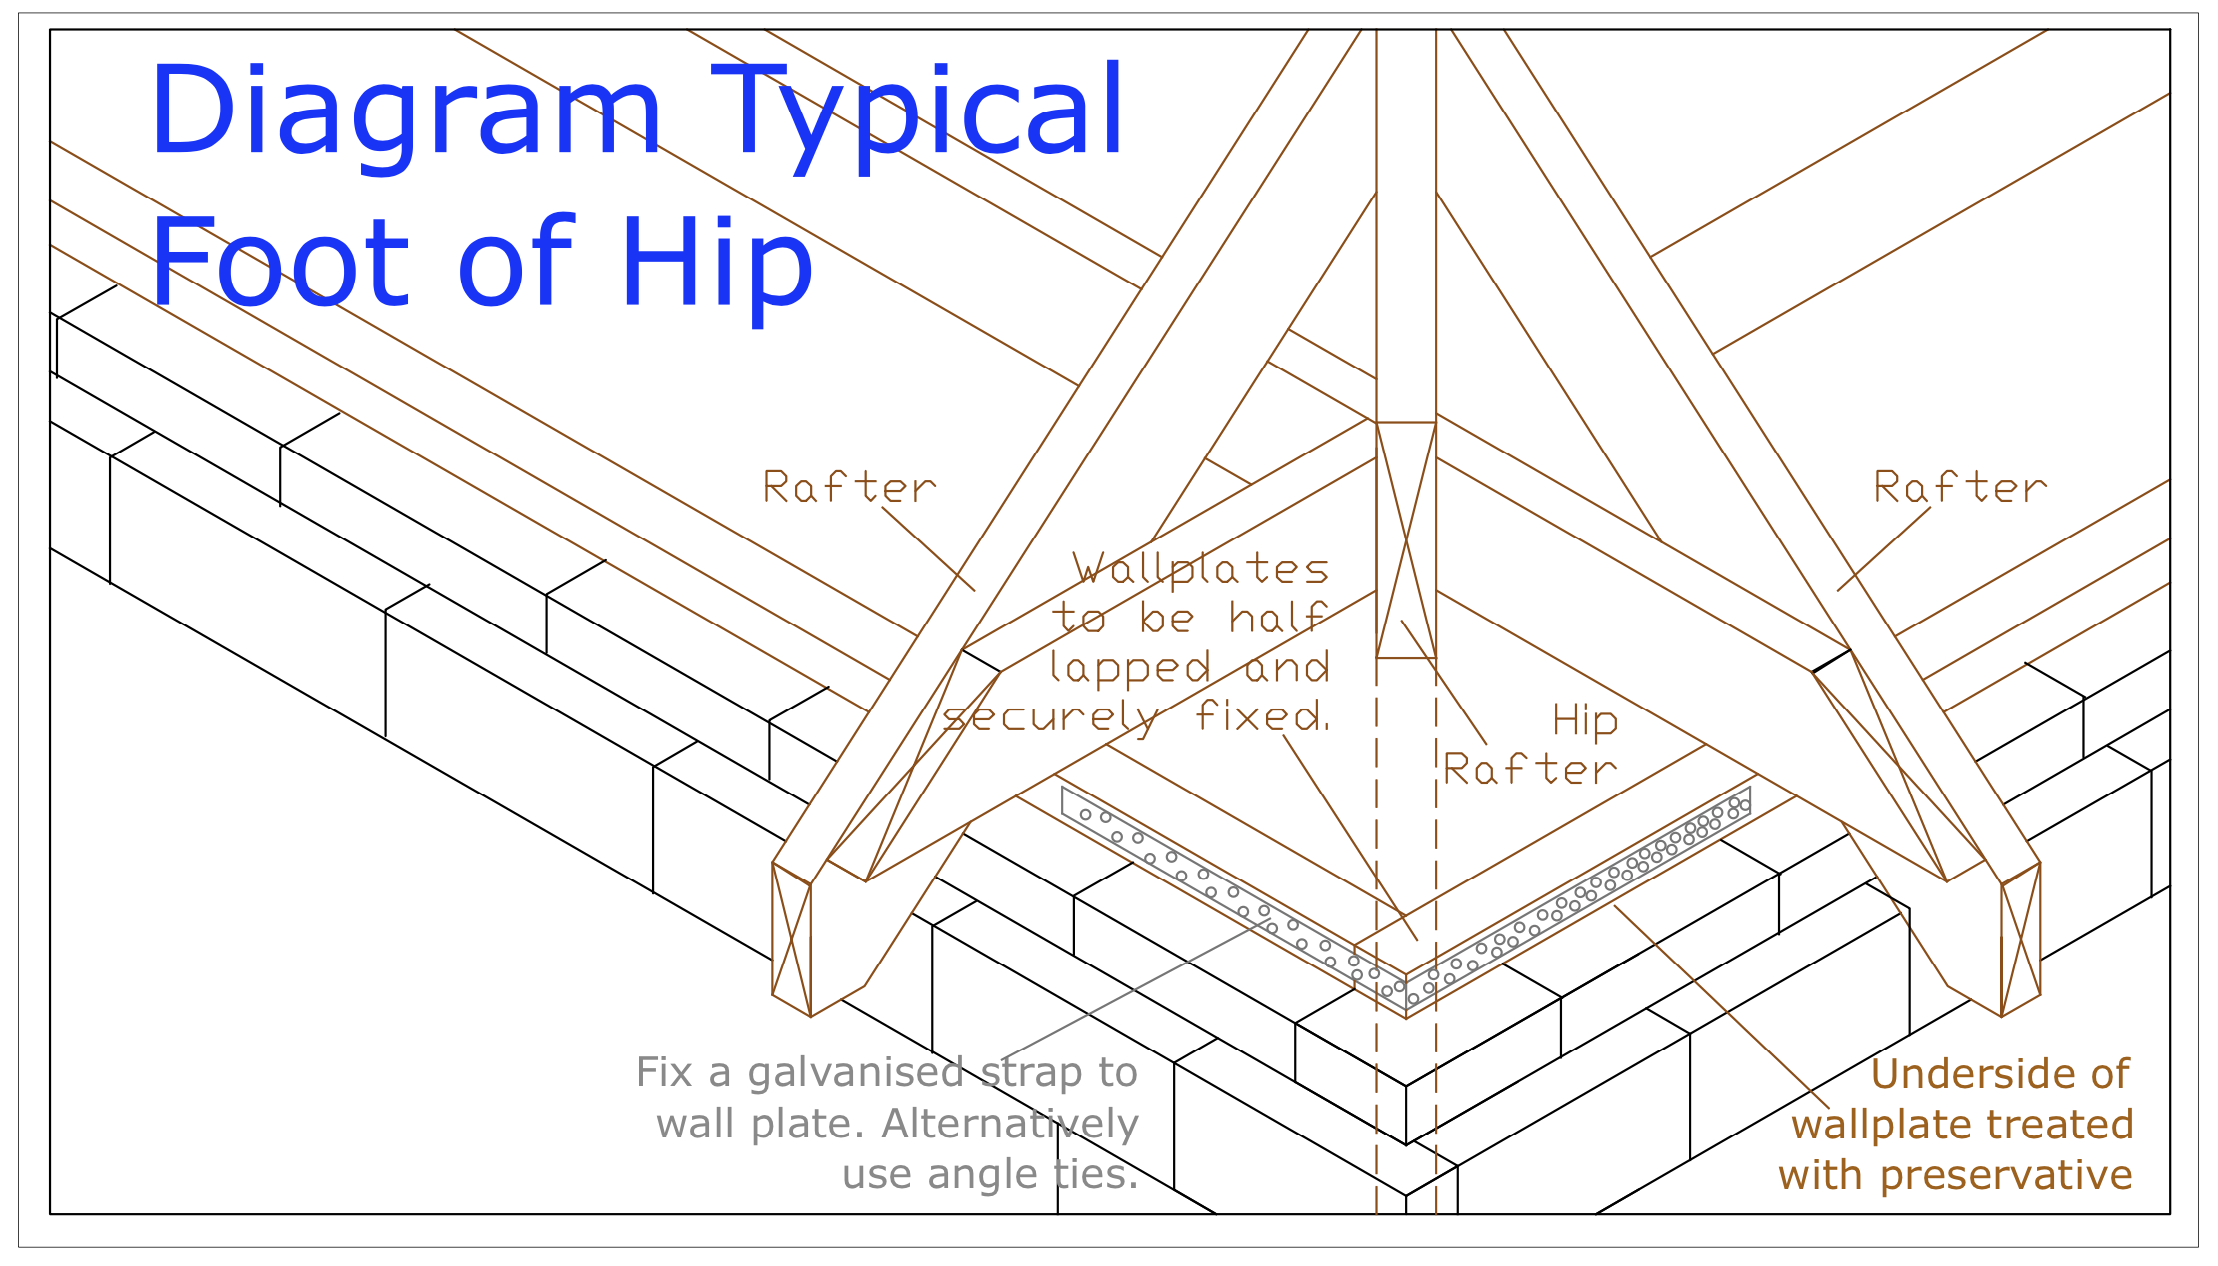 DIAGRAM D30 foot of Hip